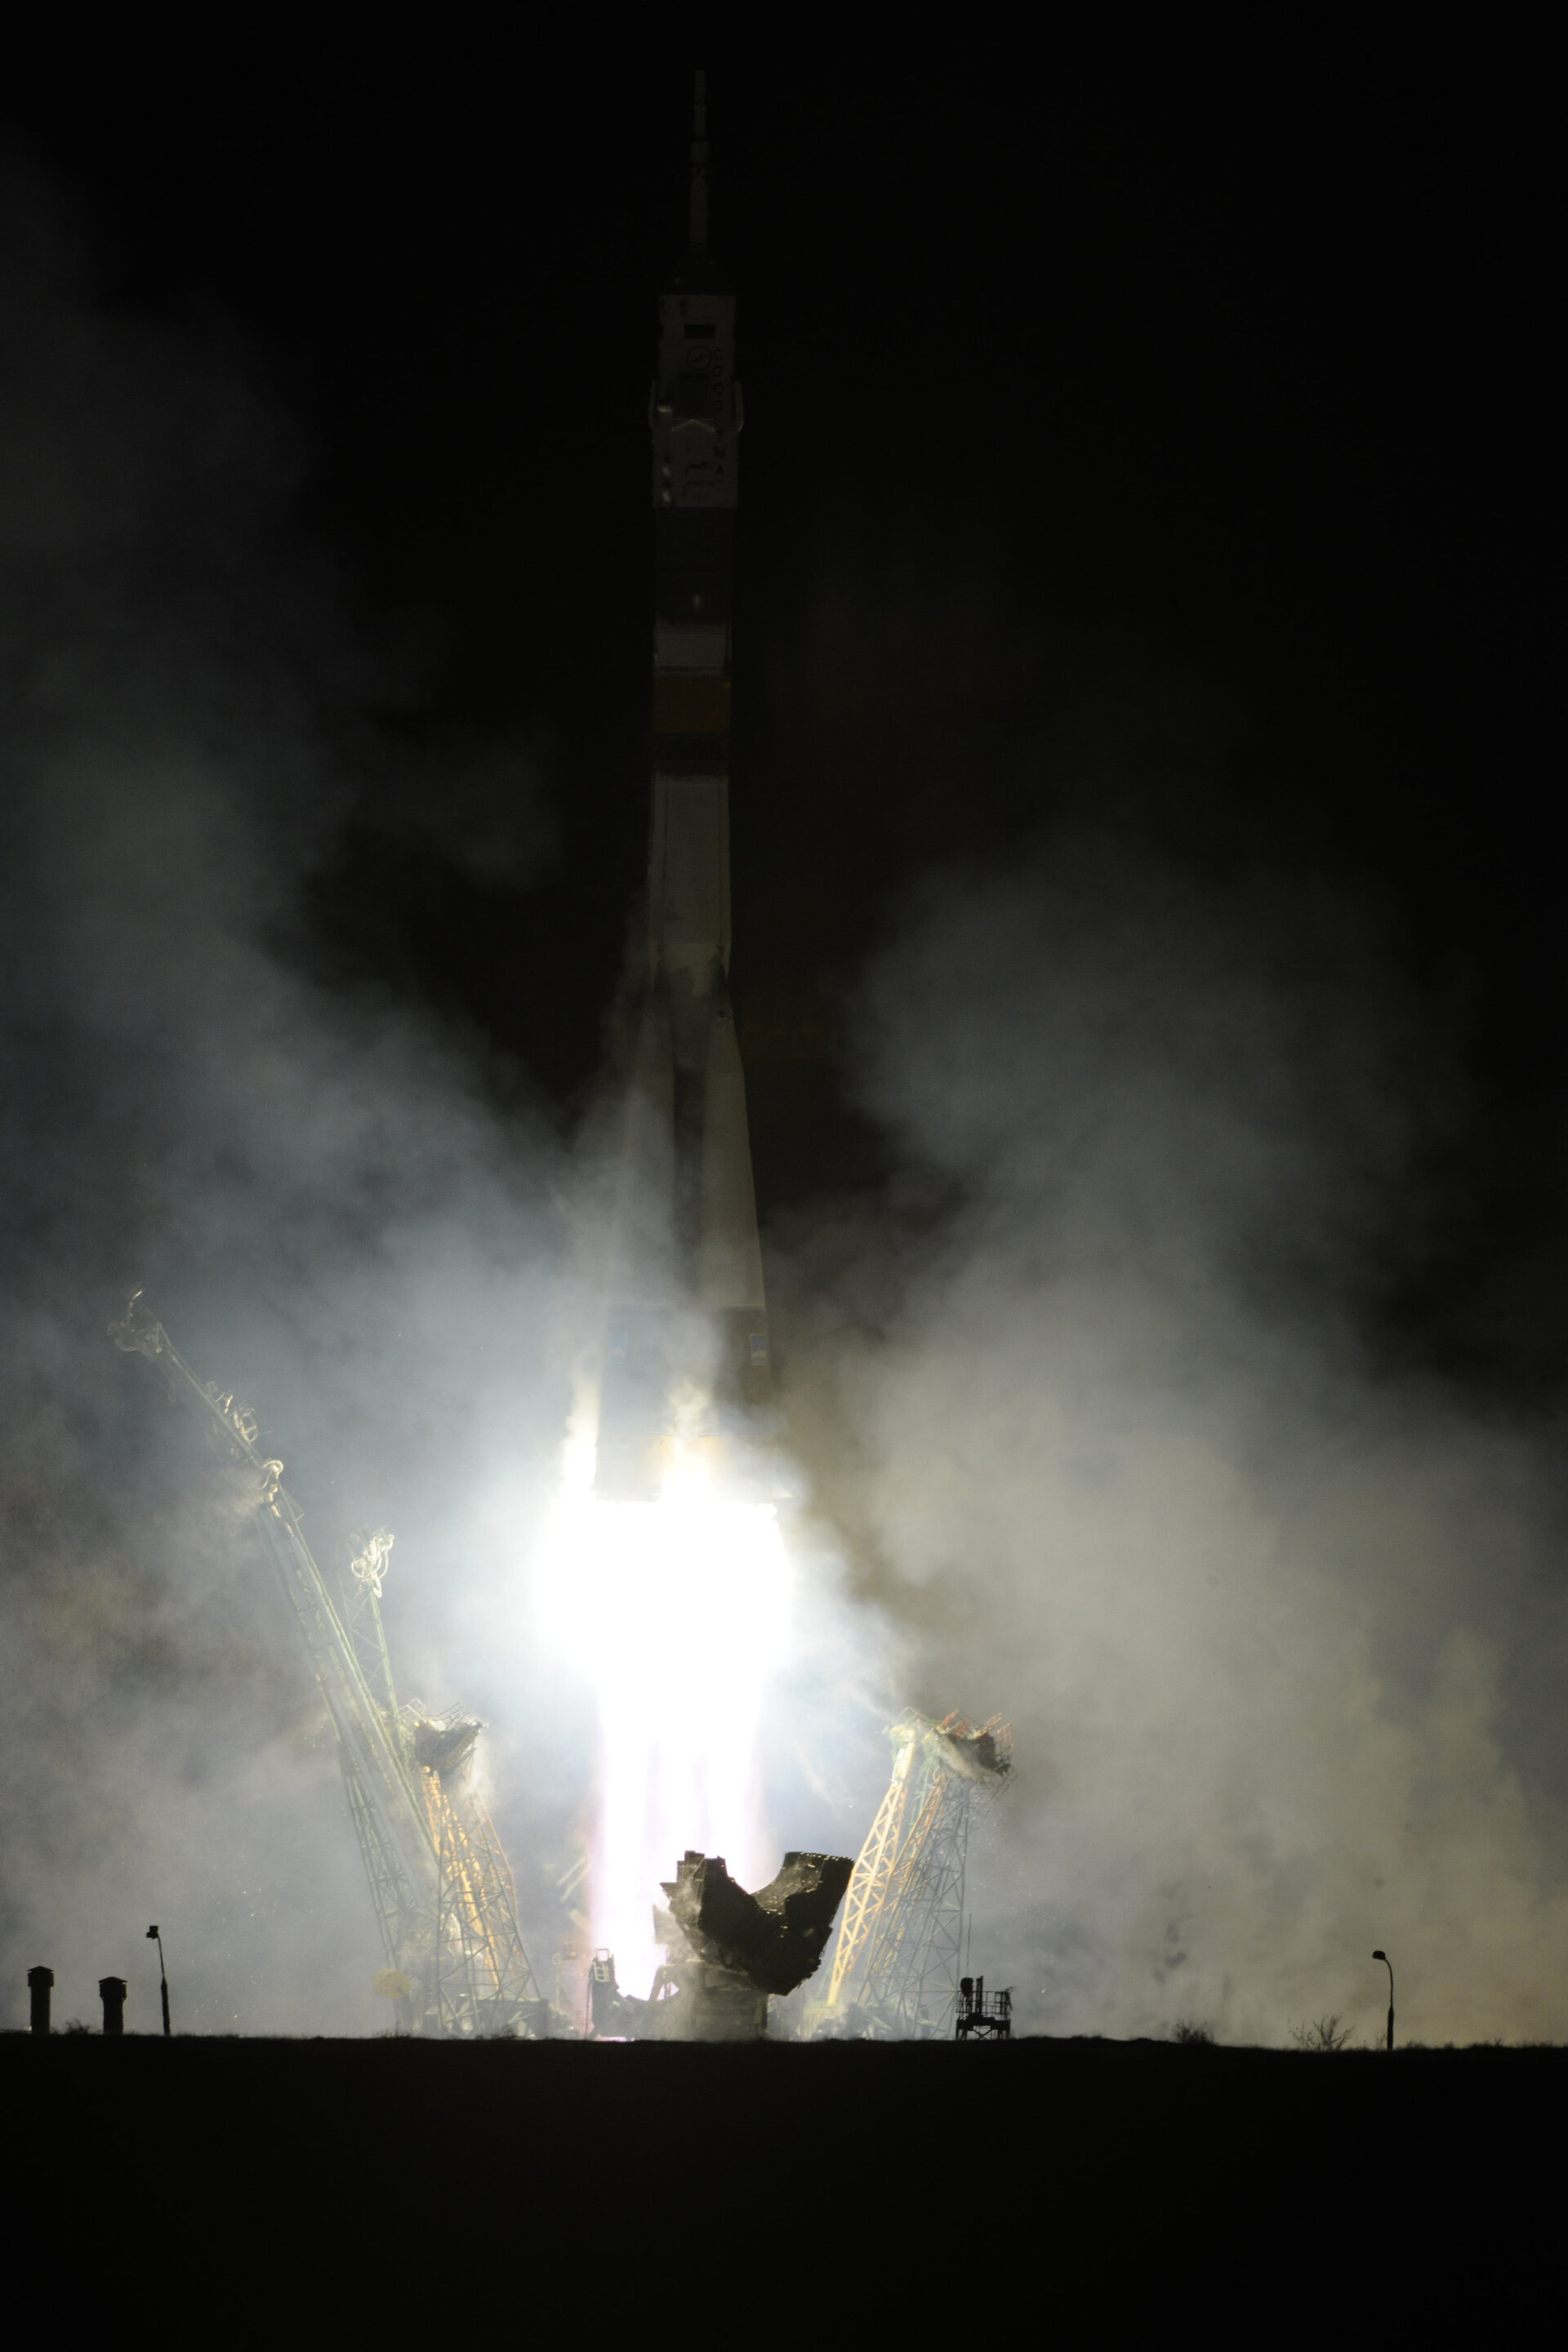 Launch of the Soyuz TMA-03M on 21 December 2011